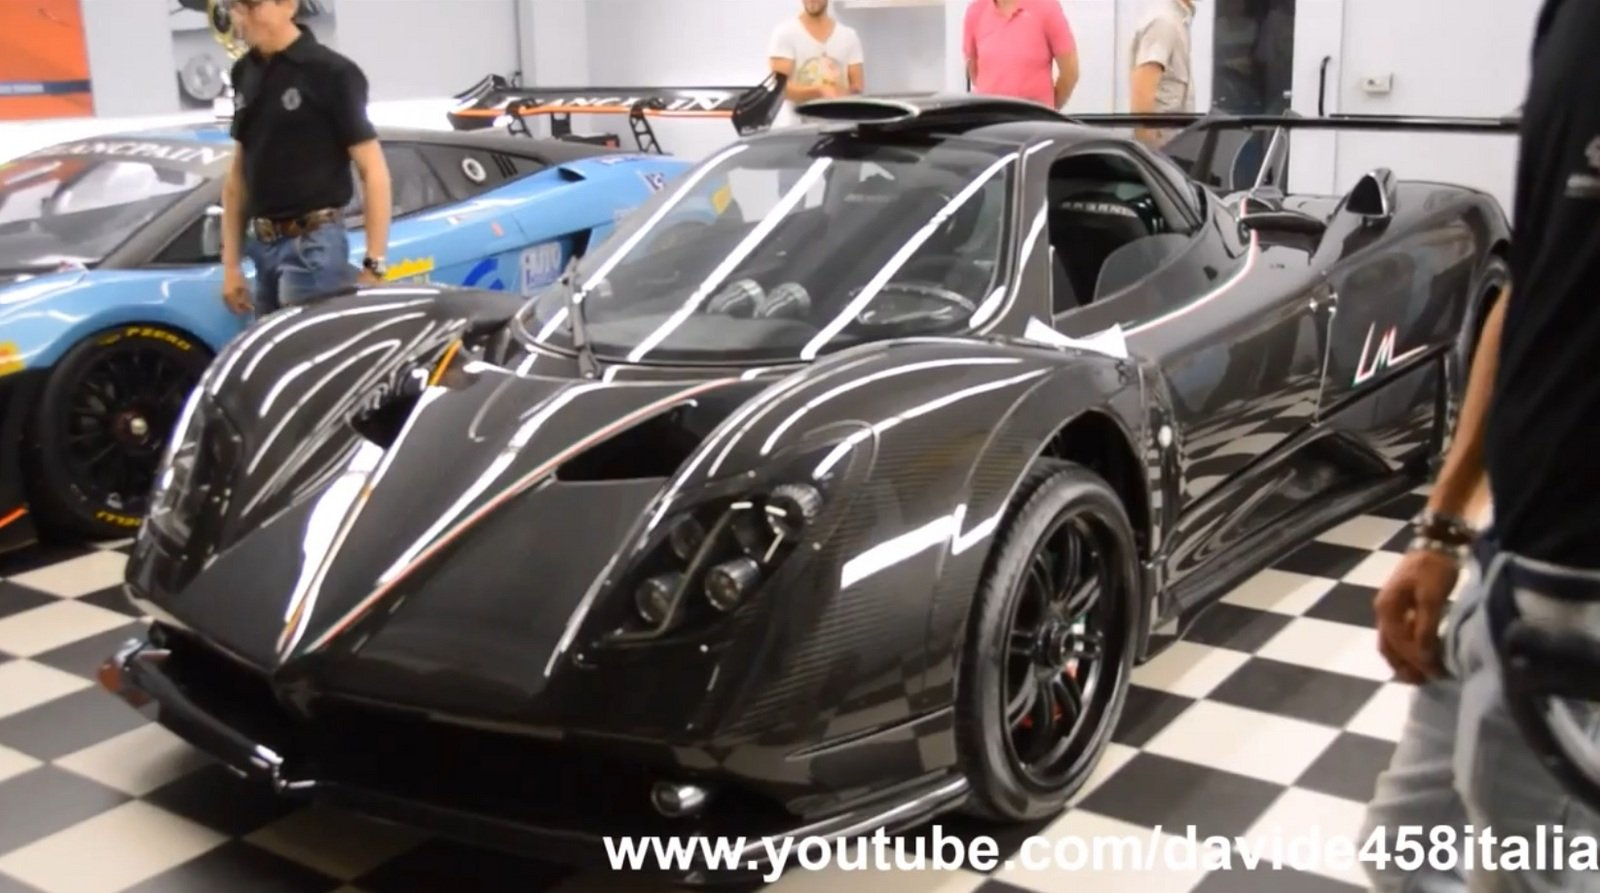 2015 Pagani Zonda 760 LM Pictures, Photos, Wallpapers And Videos. | Top Speed